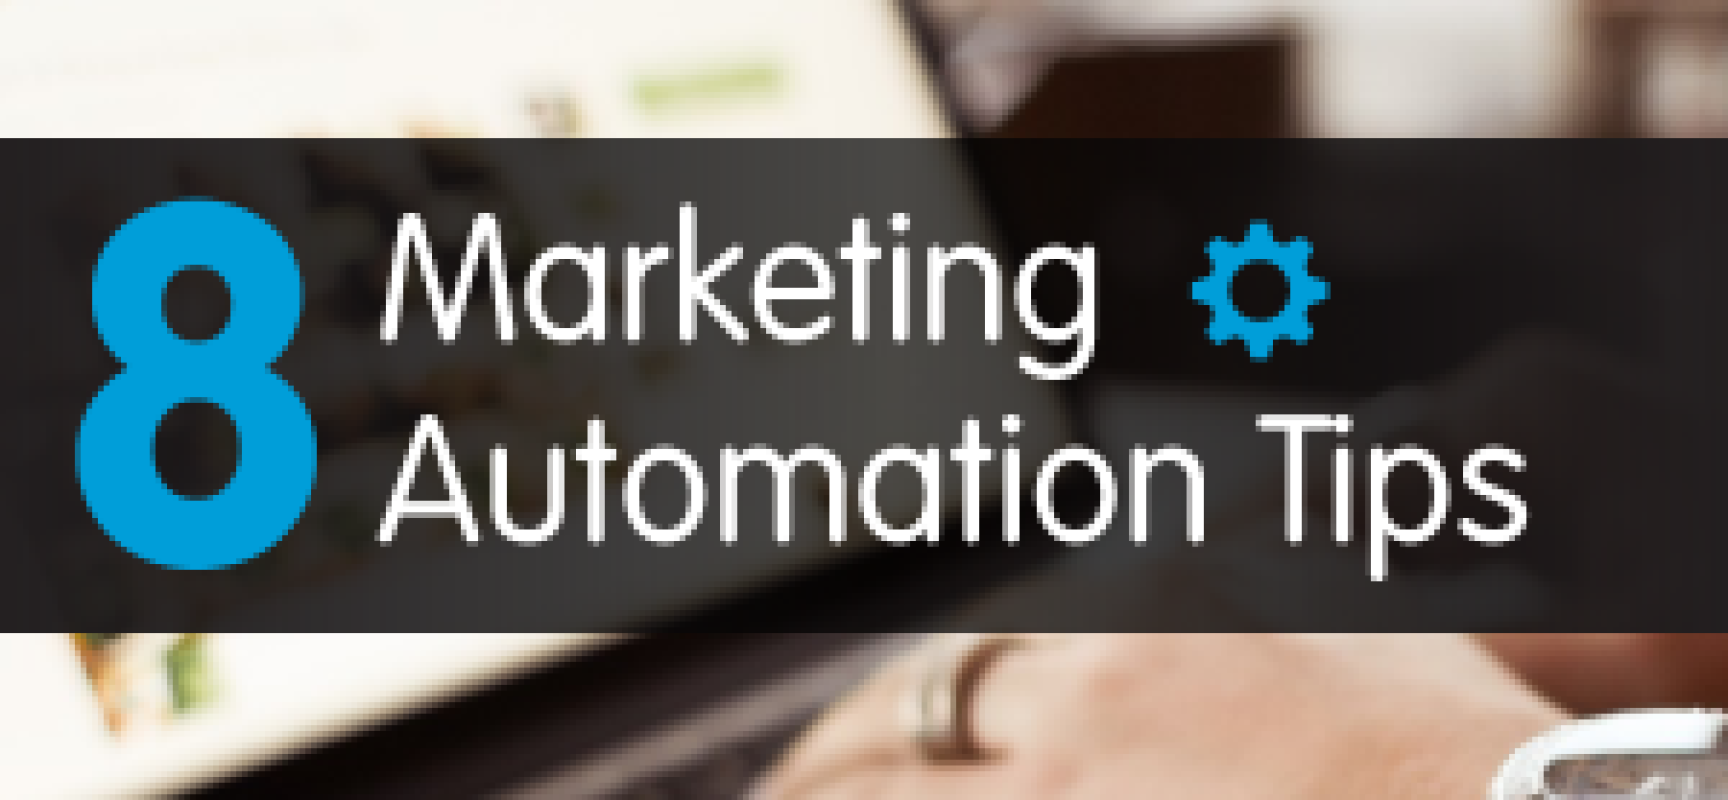 Post Event Marketing Automation Tips